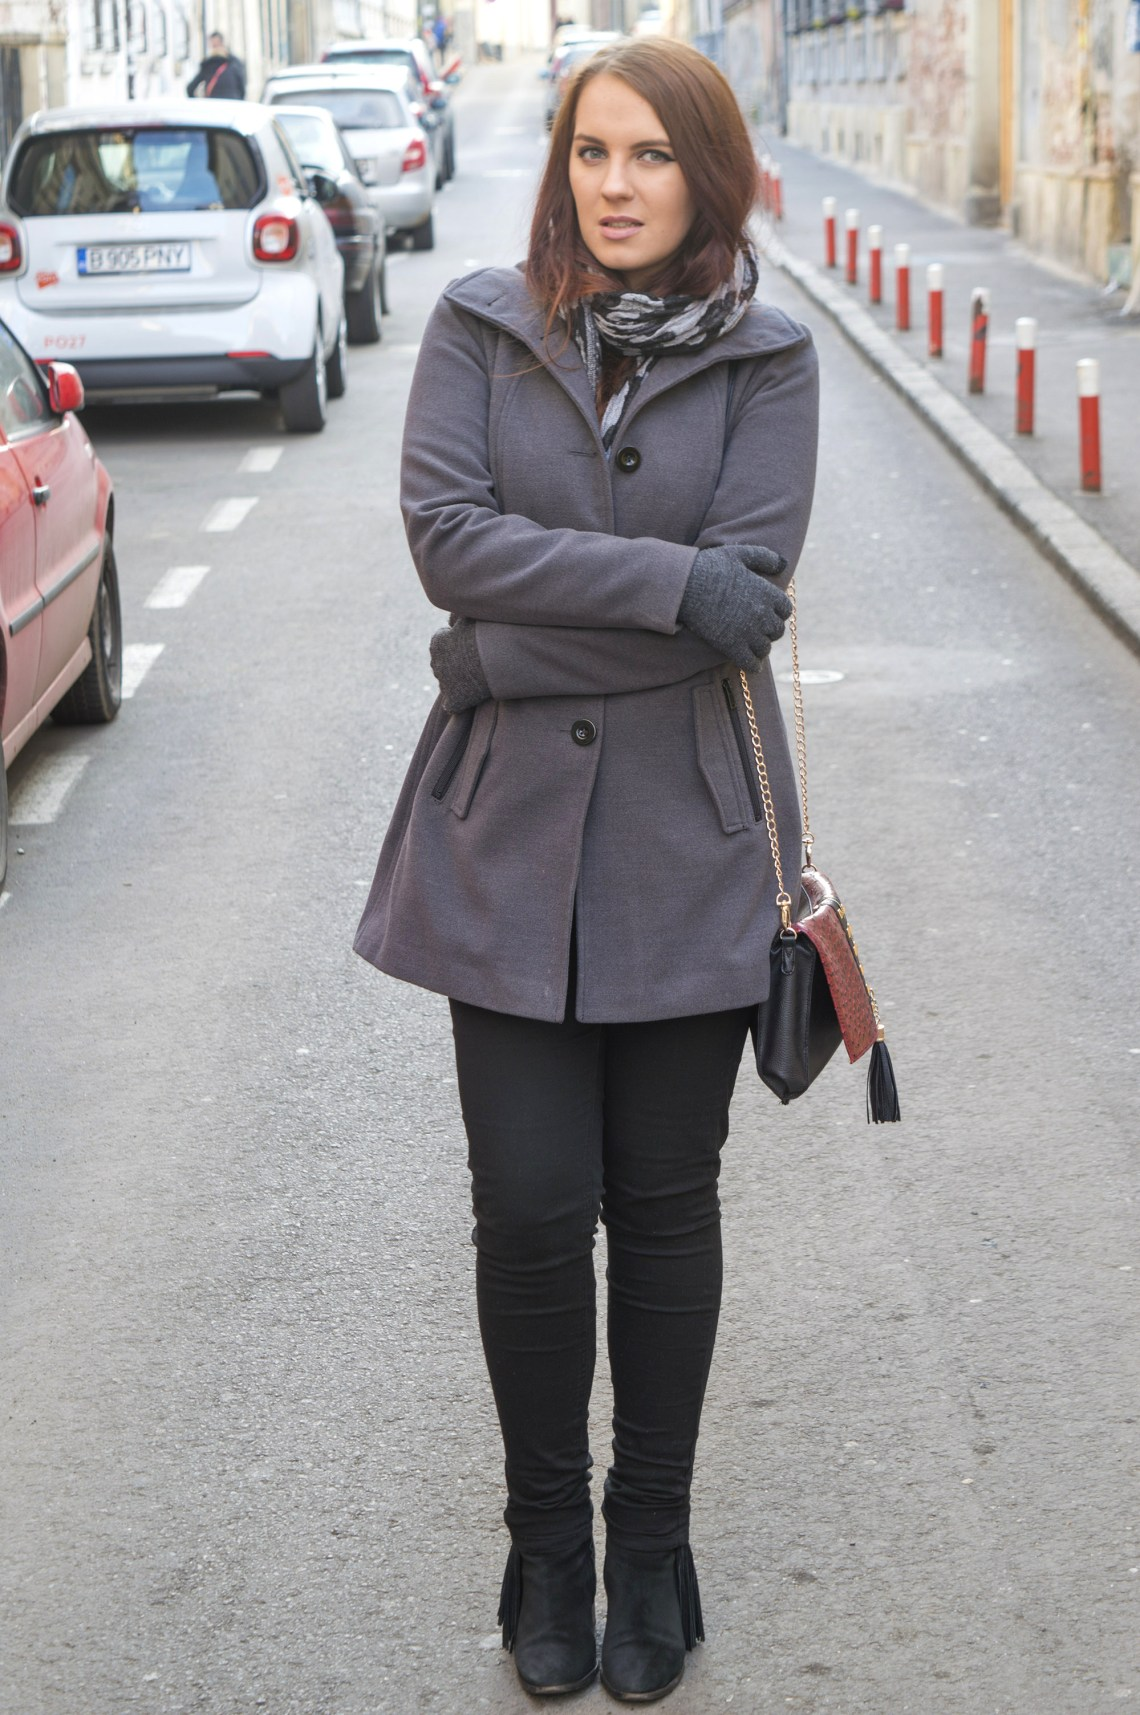 winter ootd - grey coat and turtleneck, black trousers and boots (6)